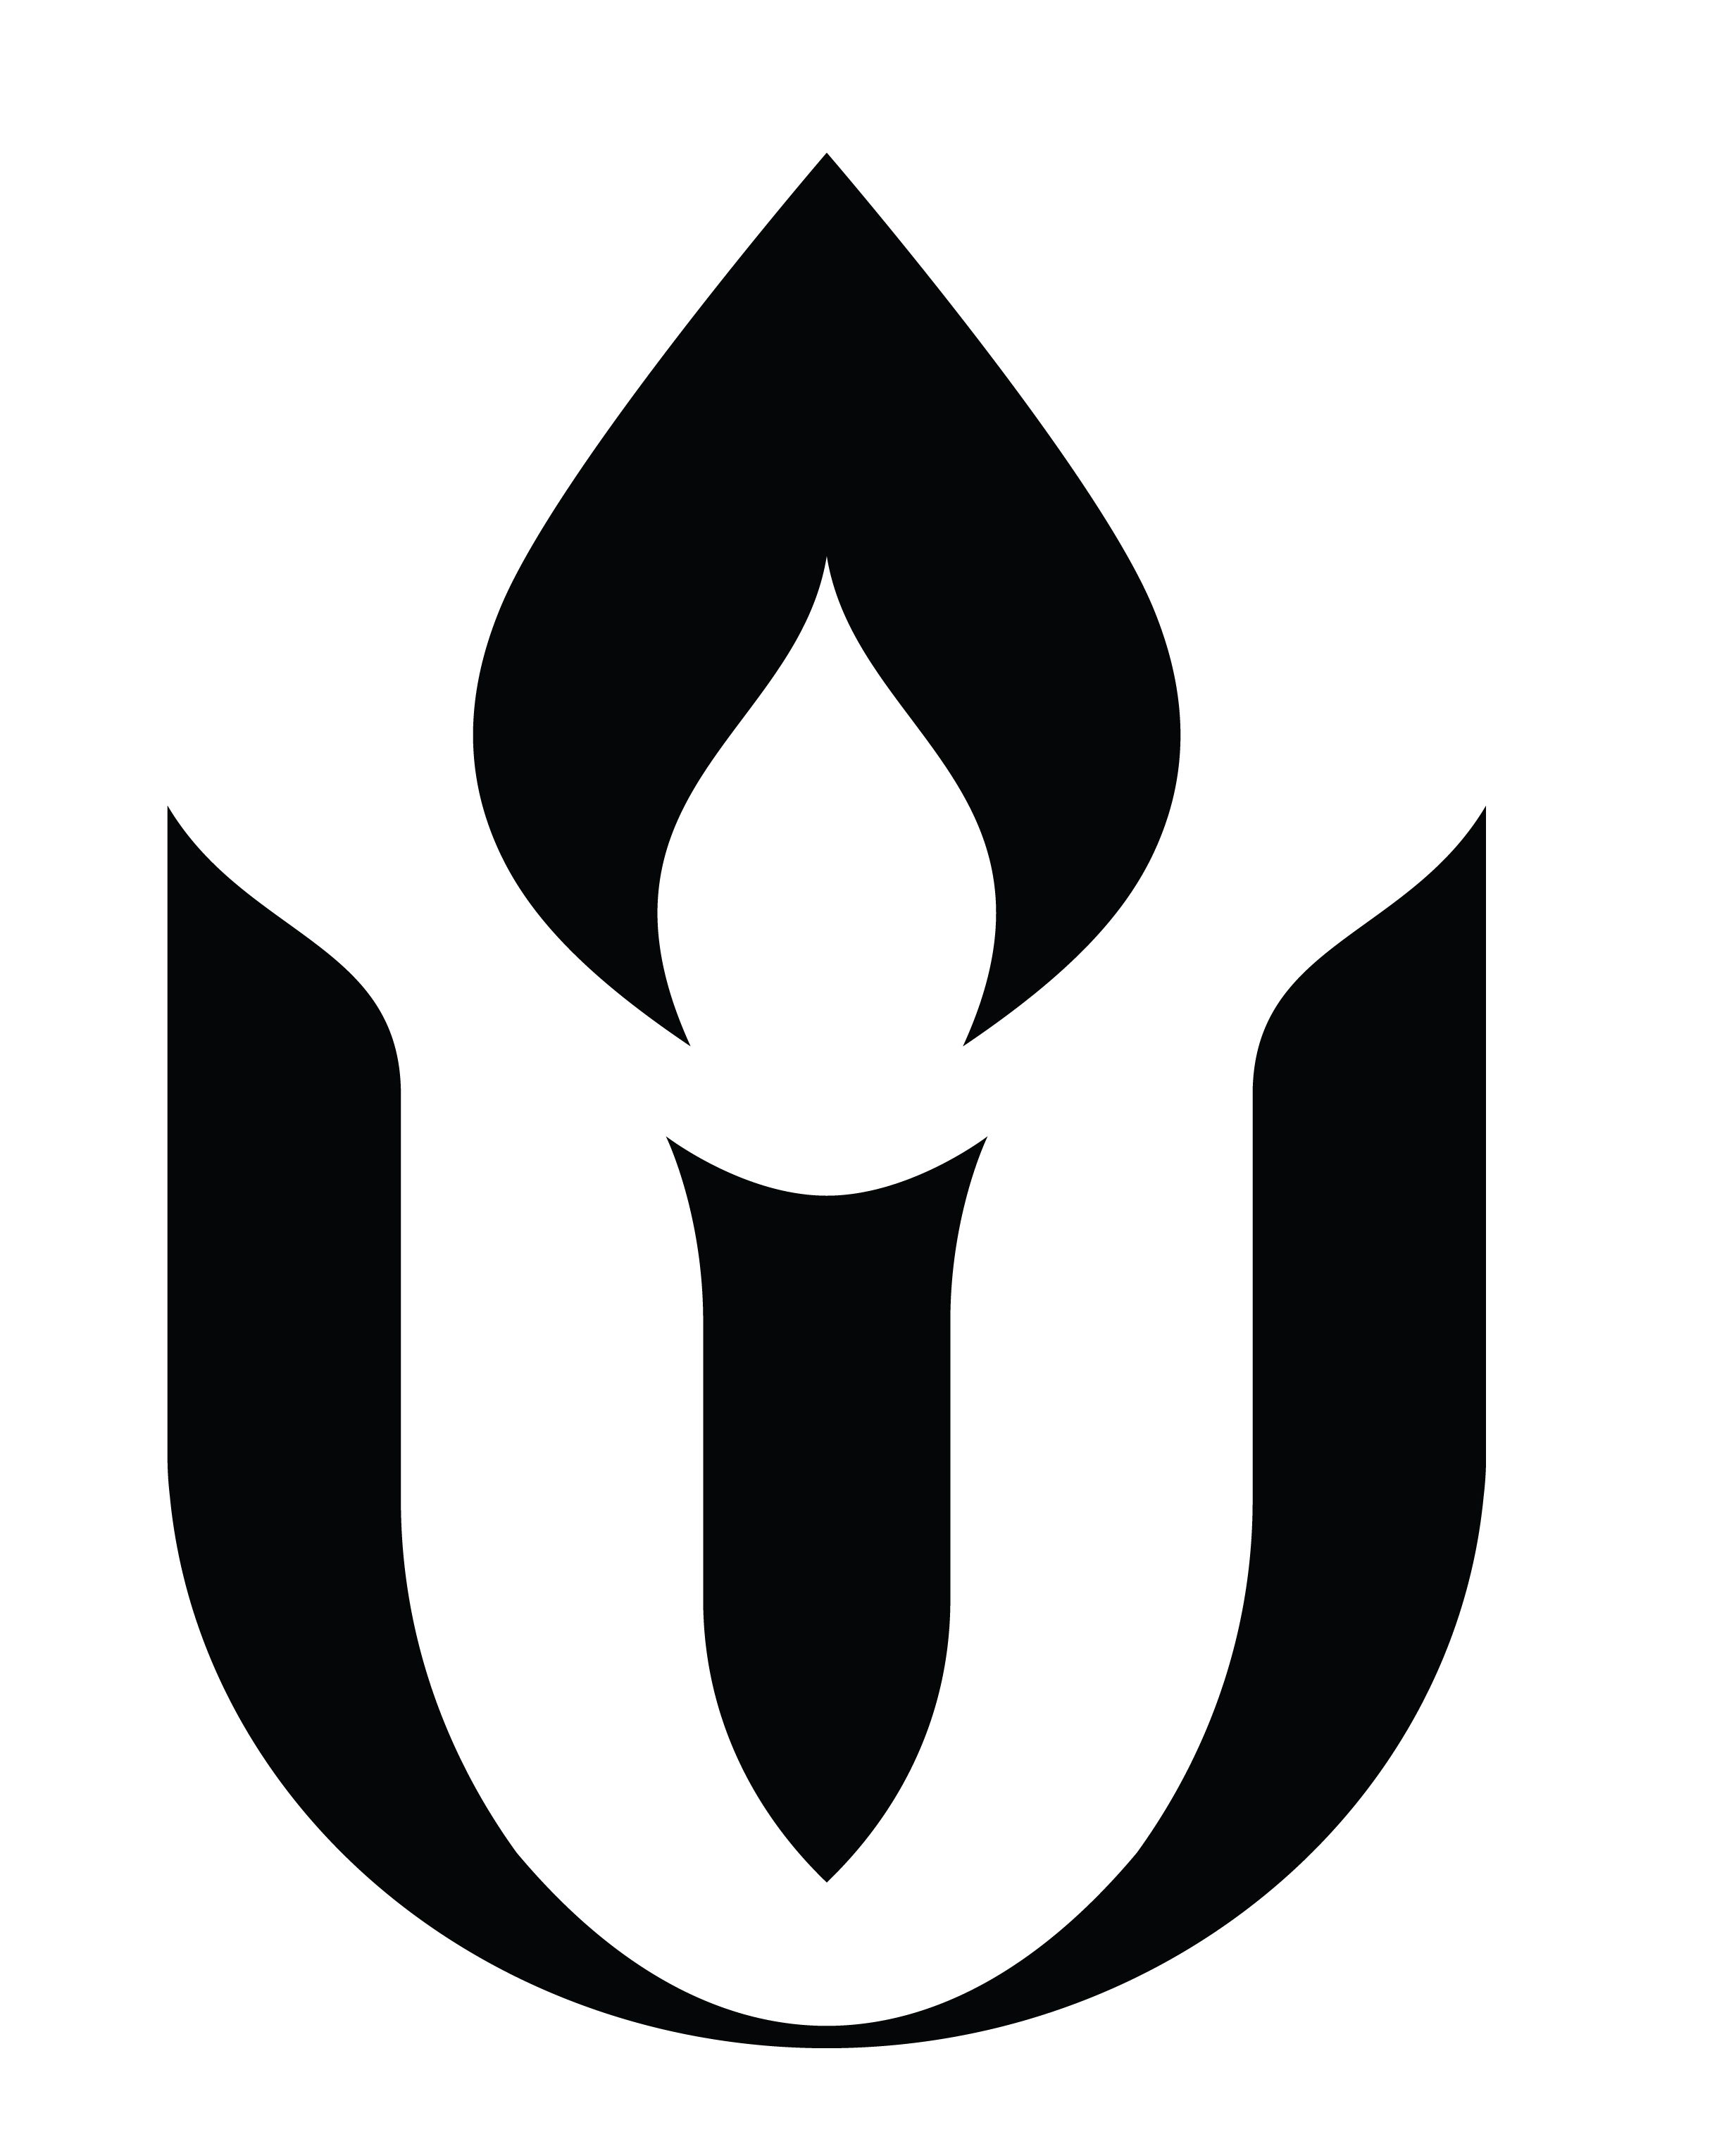 Unitarian Universalists of Clearwater Endowment Foundation, Inc.